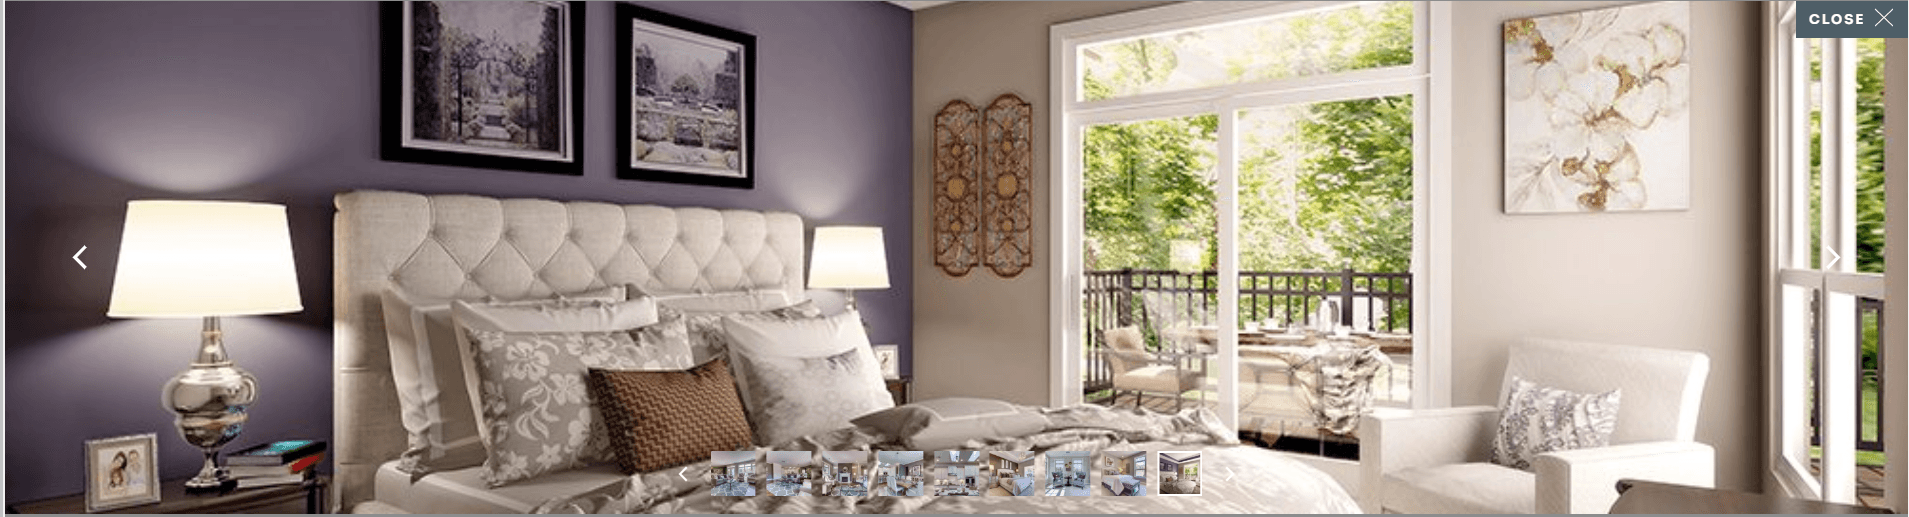 Bedroom featured in the Promenade By Epcon Homes and Communities in Cincinnati, OH